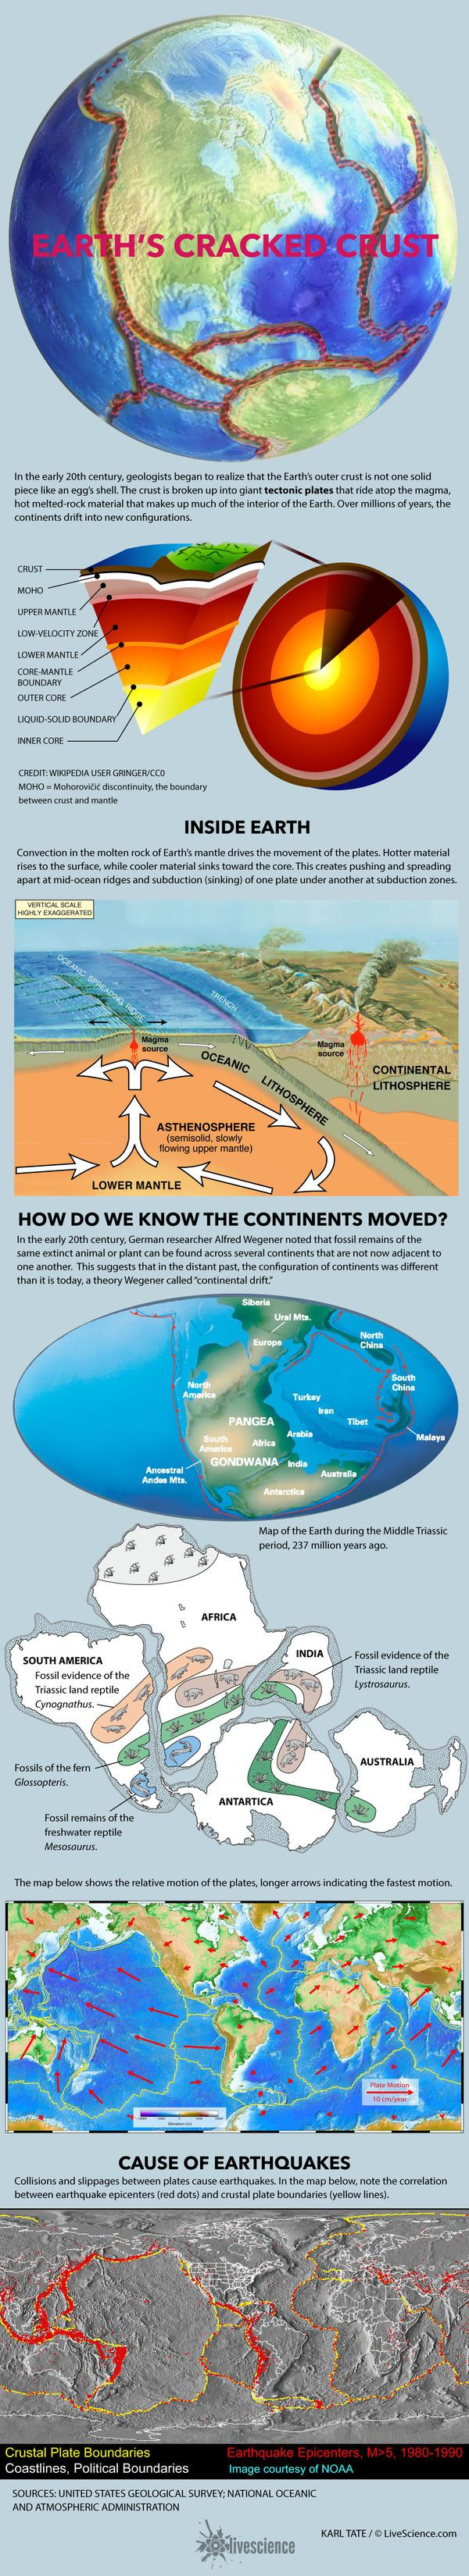 Plate Tectonics and Continental Drift (Infographic)                                                                                                                                                     More